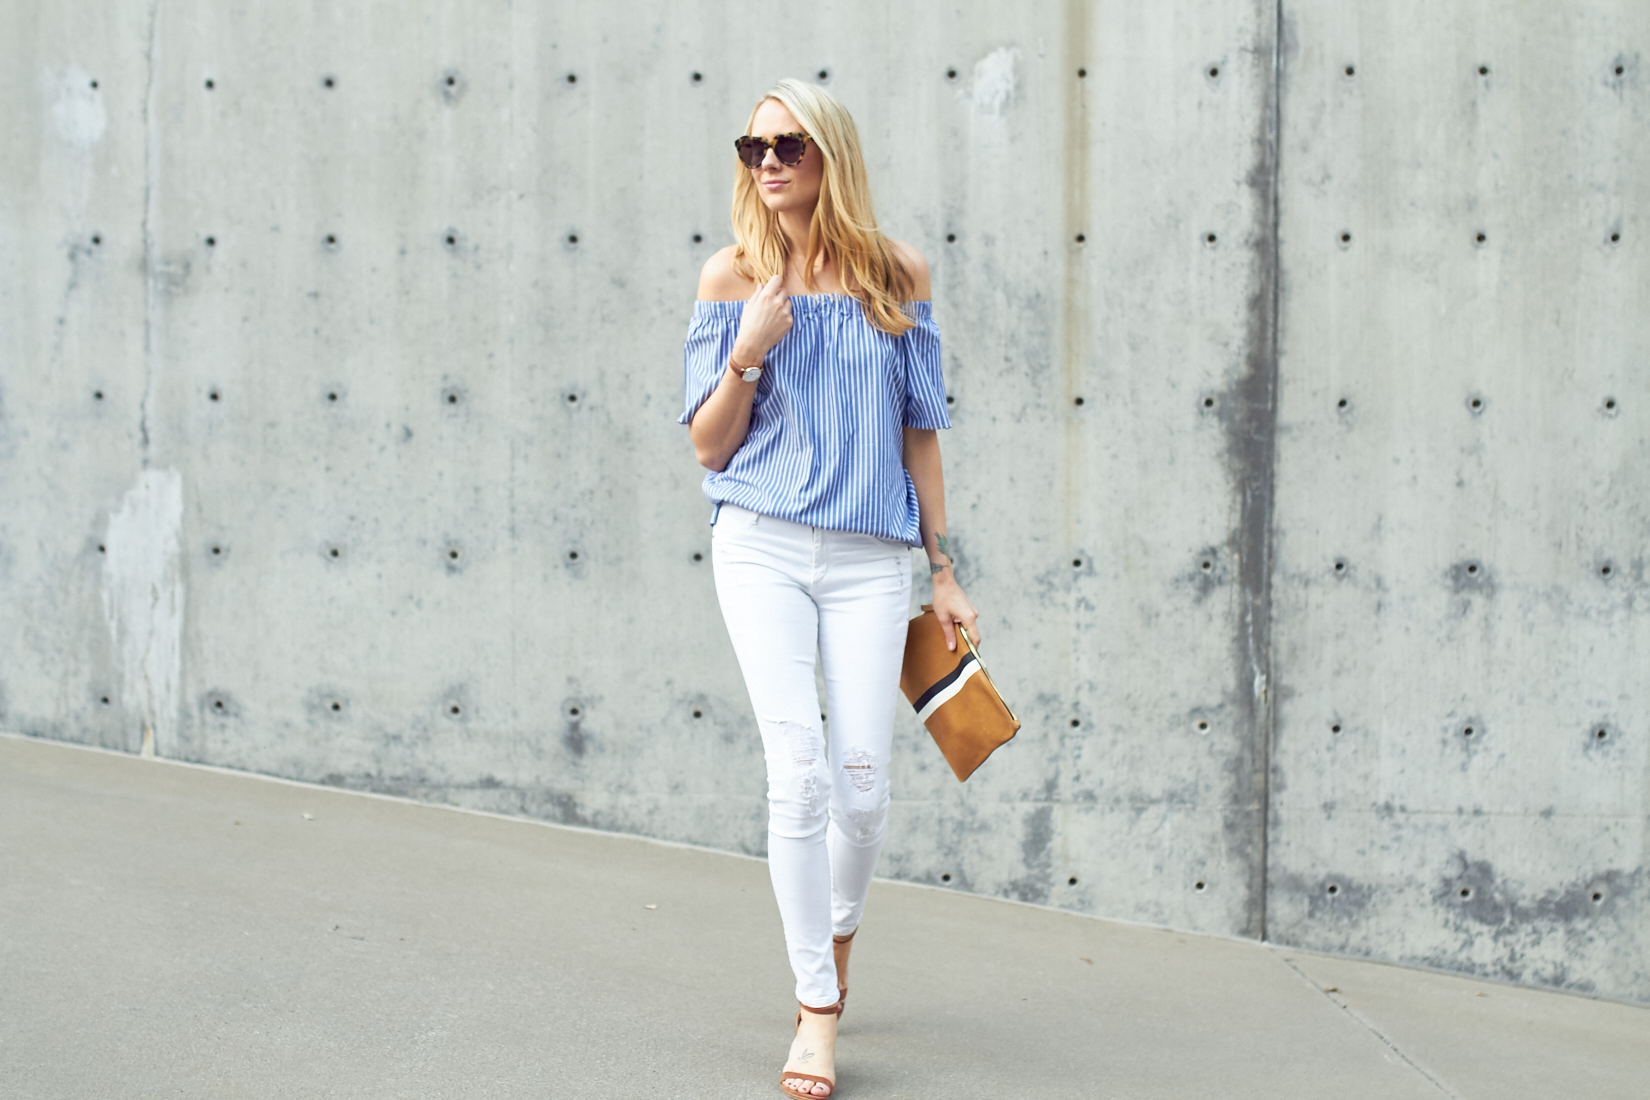 fashion-jackson-banana-republic-blue-stripe-off-the-shoulder-top-white-skinny-jeans-stuart-weitzman-nearly-nude-sandals-clare-v-clutch-karen-walker-number-one-sunglasses